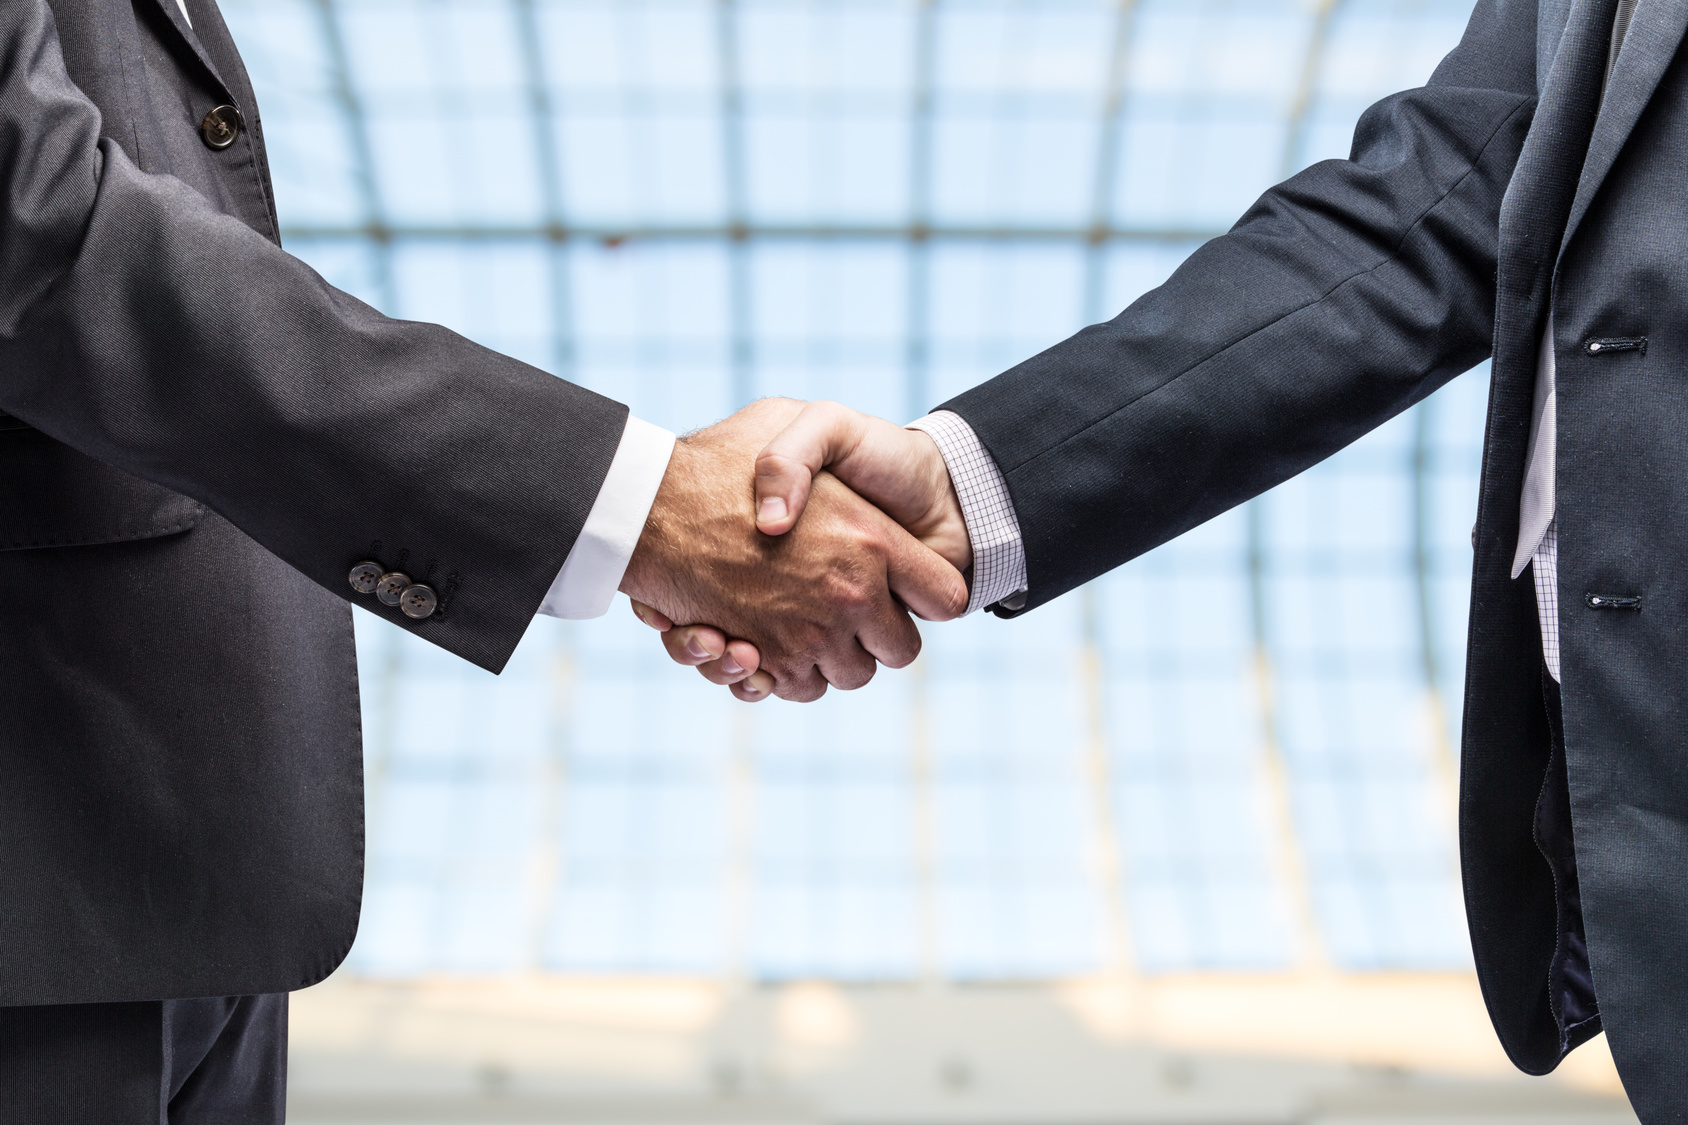 5 Key Traits to Look for in an EMS Business Partner